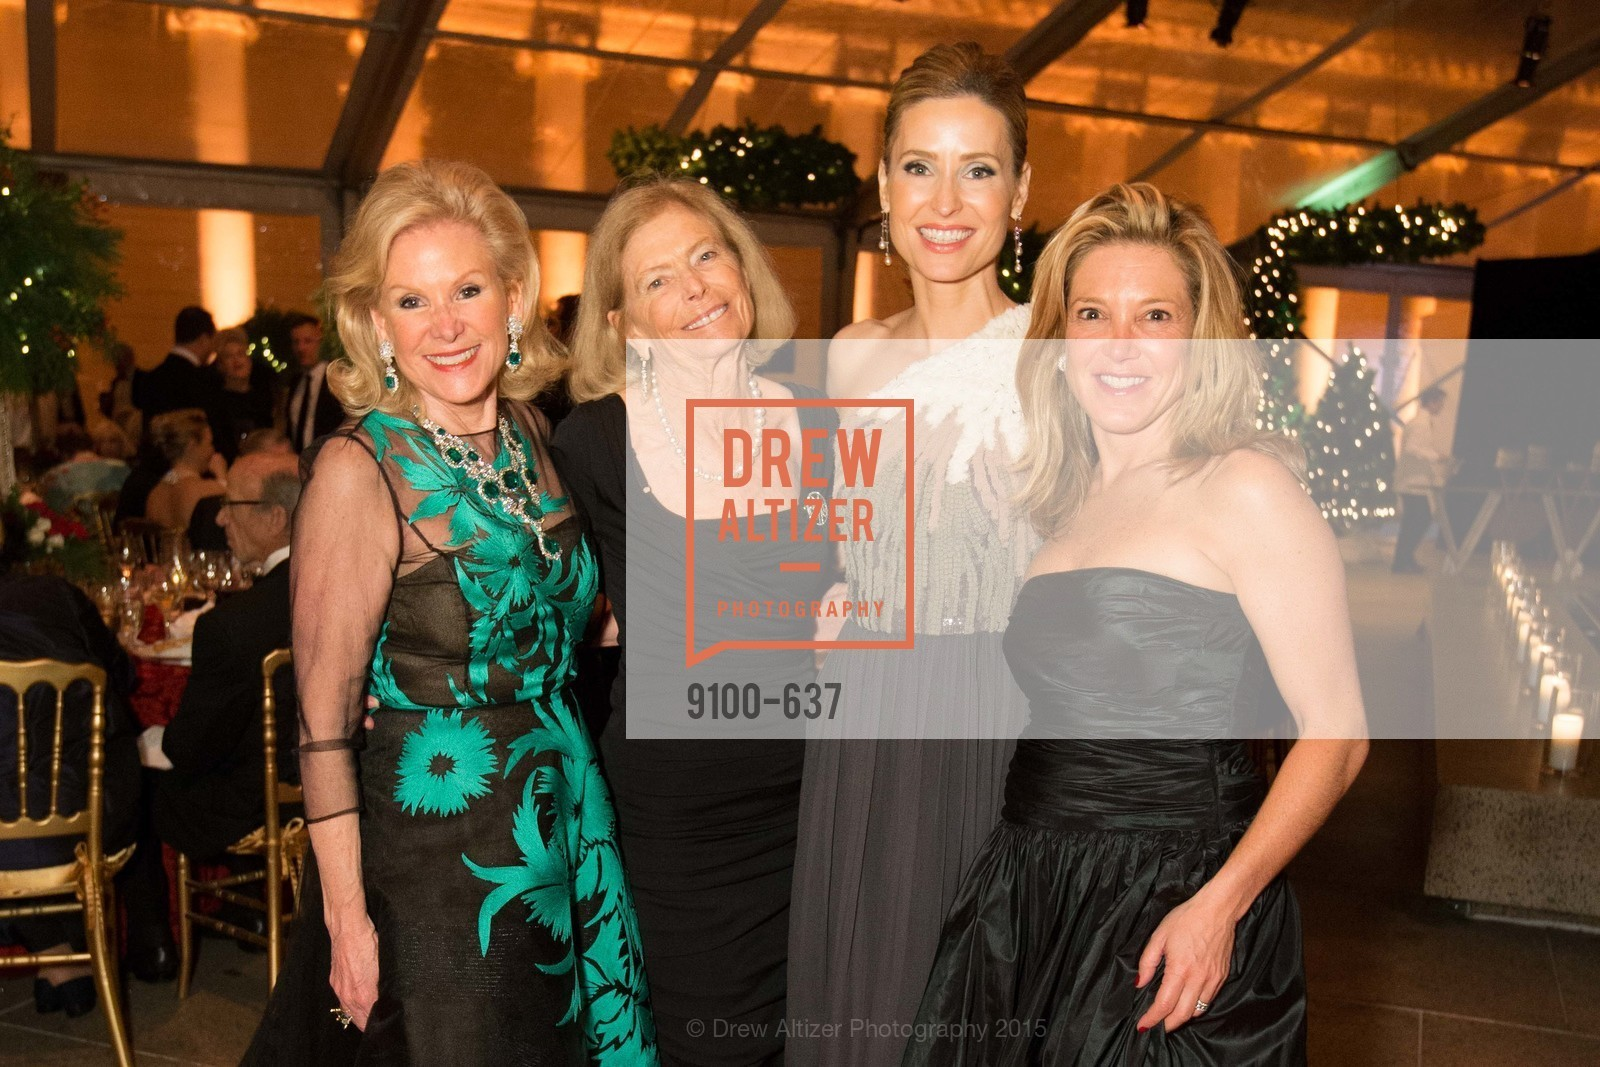 Dede Wilsey, Marion Cope, Kate Harbin Clammer, Kathryn Lasater, AN ELEGANT EVENING Presented by the Fine Arts Museums of San Francisco, Legion of Honor, Court of Honor. 100 34th Ave, December 8th, 2015,Drew Altizer, Drew Altizer Photography, full-service agency, private events, San Francisco photographer, photographer california